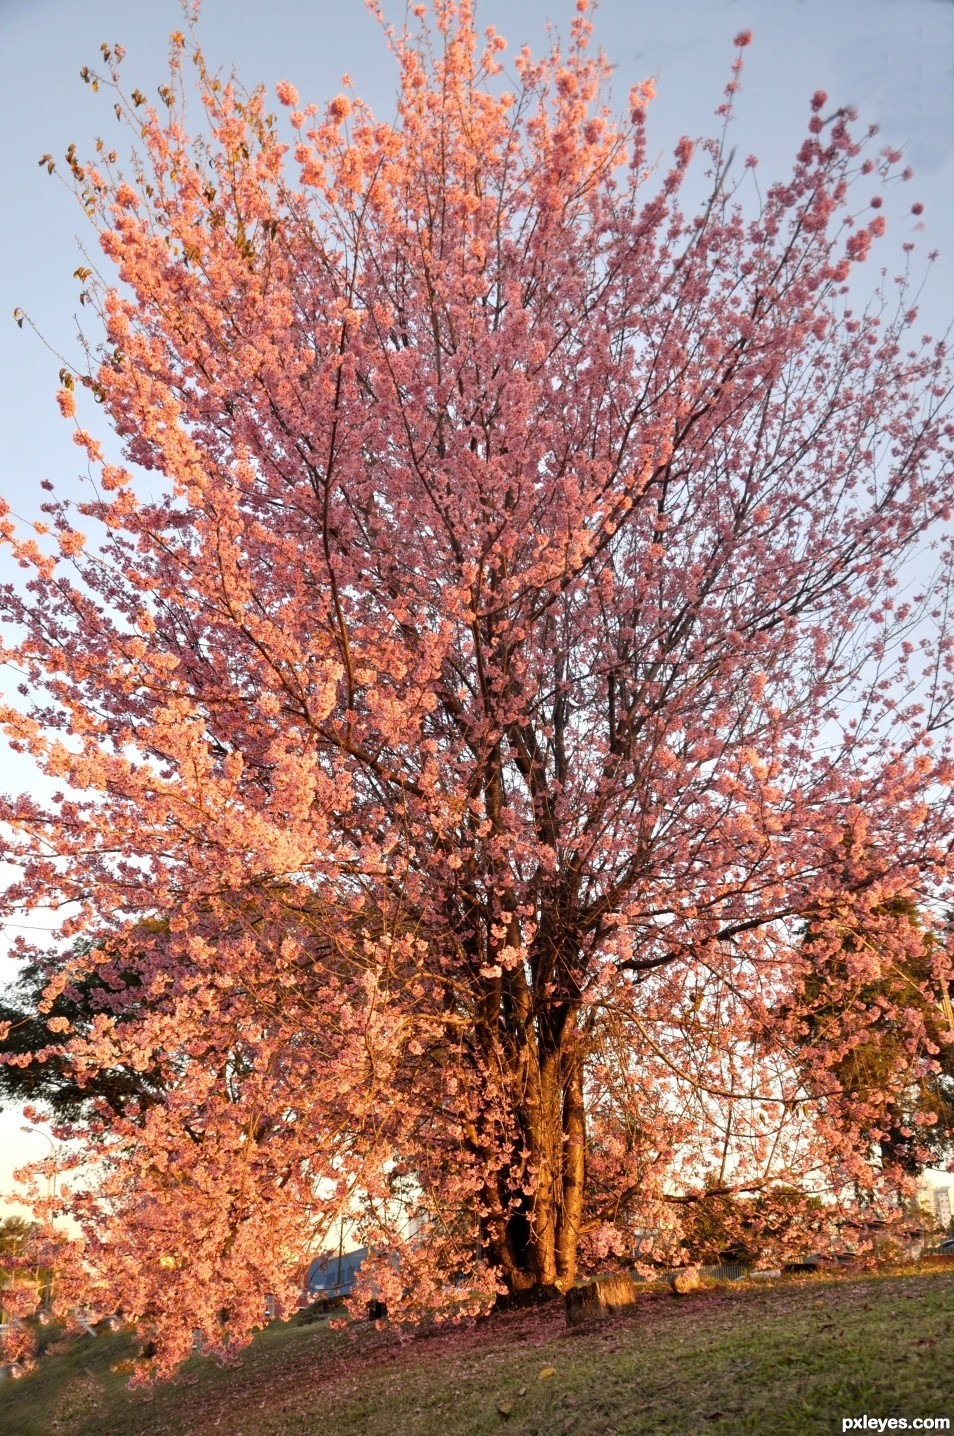 A tree of flowers